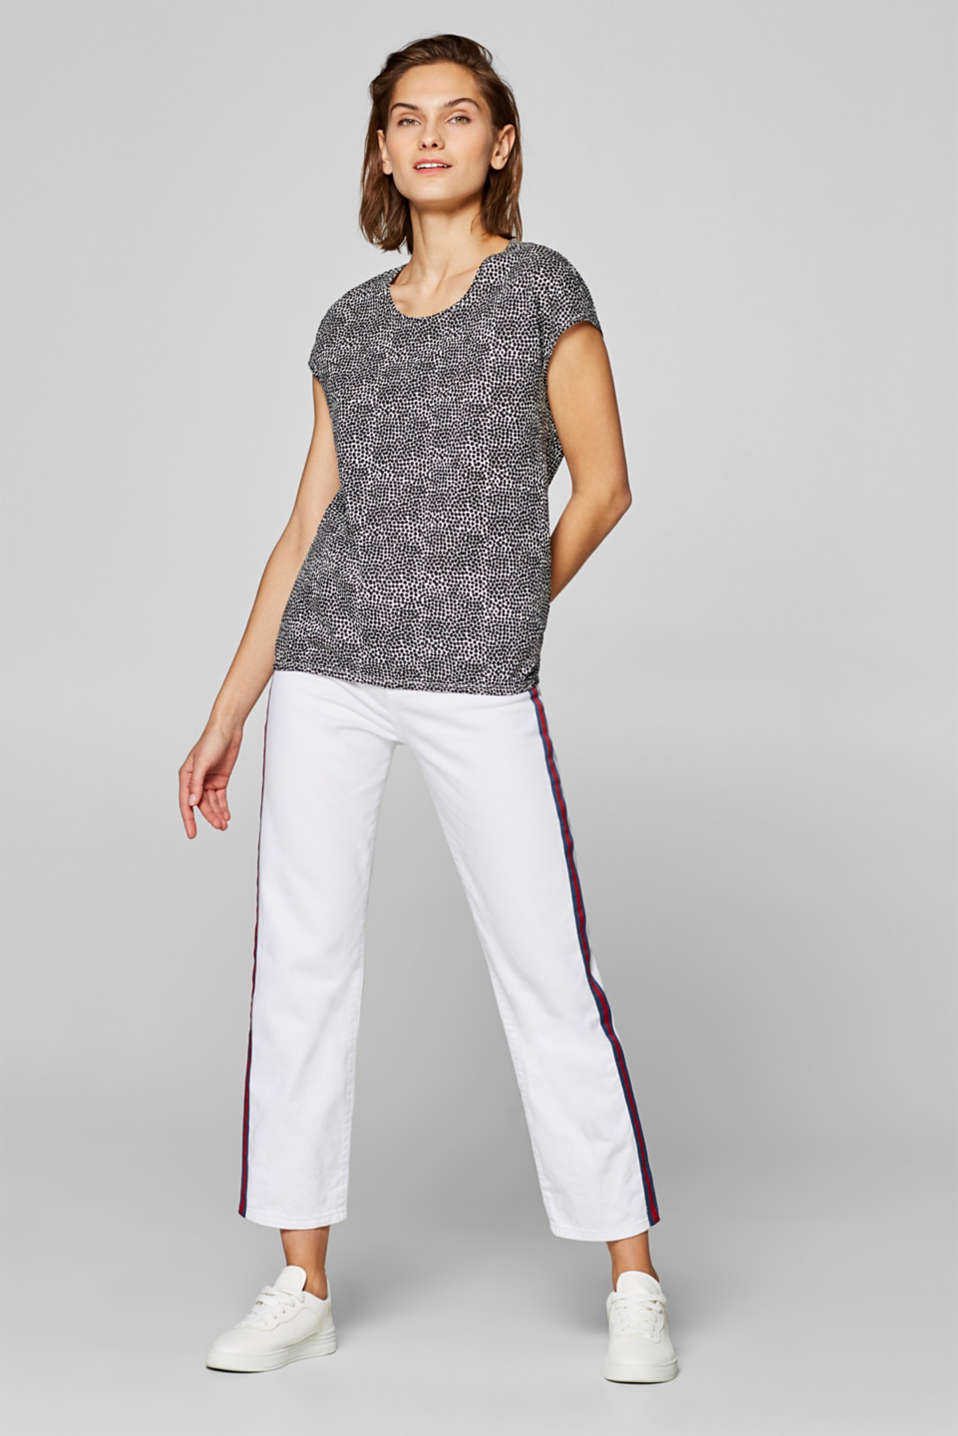 Printed top with an elasticated waistband, 100% cotton, OFF WHITE, detail image number 1